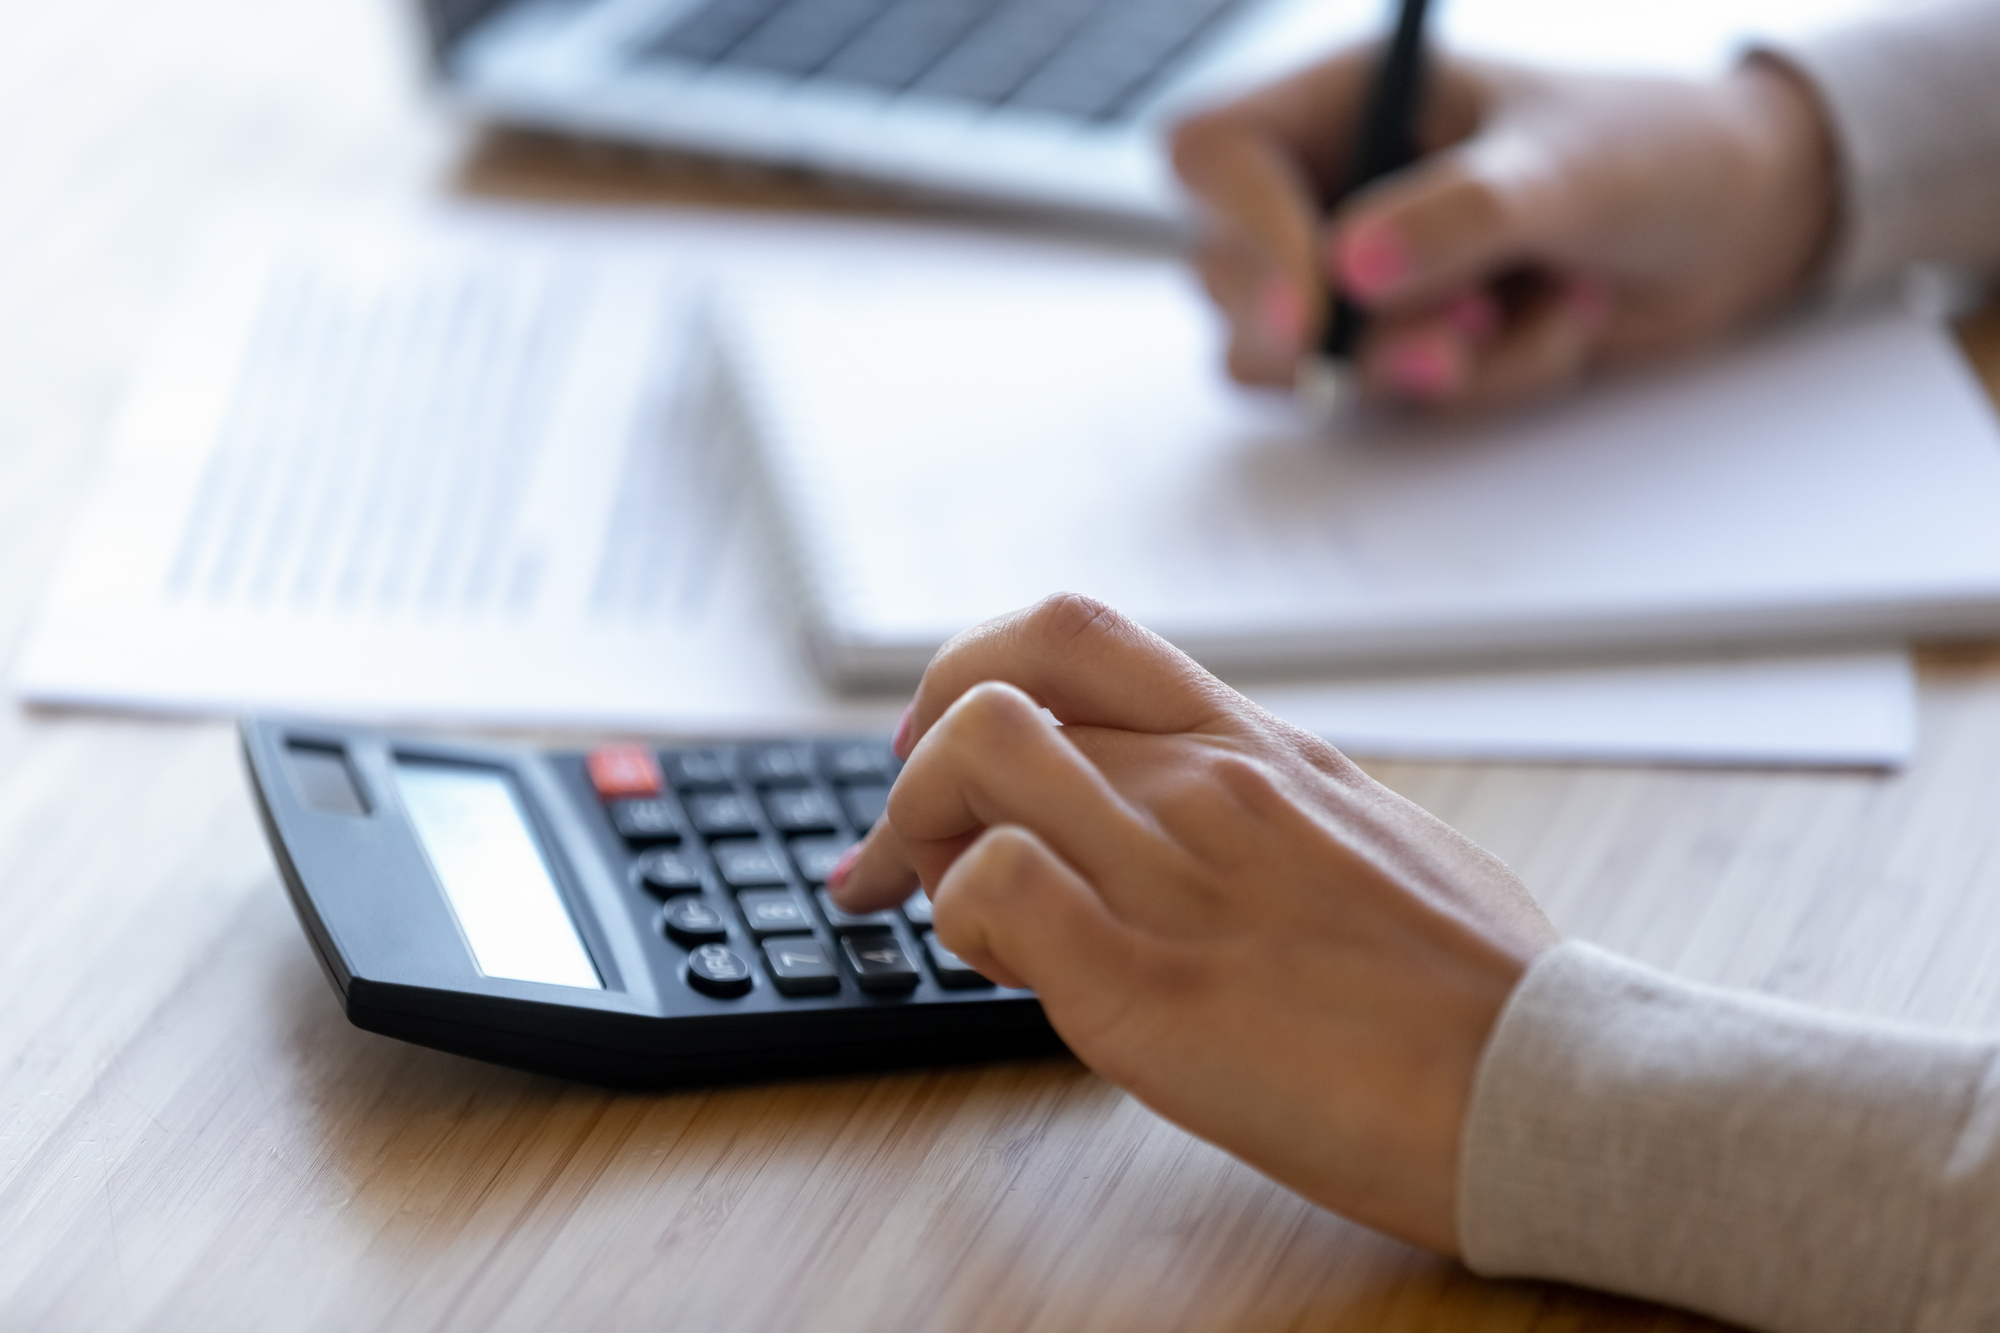 Female professional using calculator for business financial accounting, close up